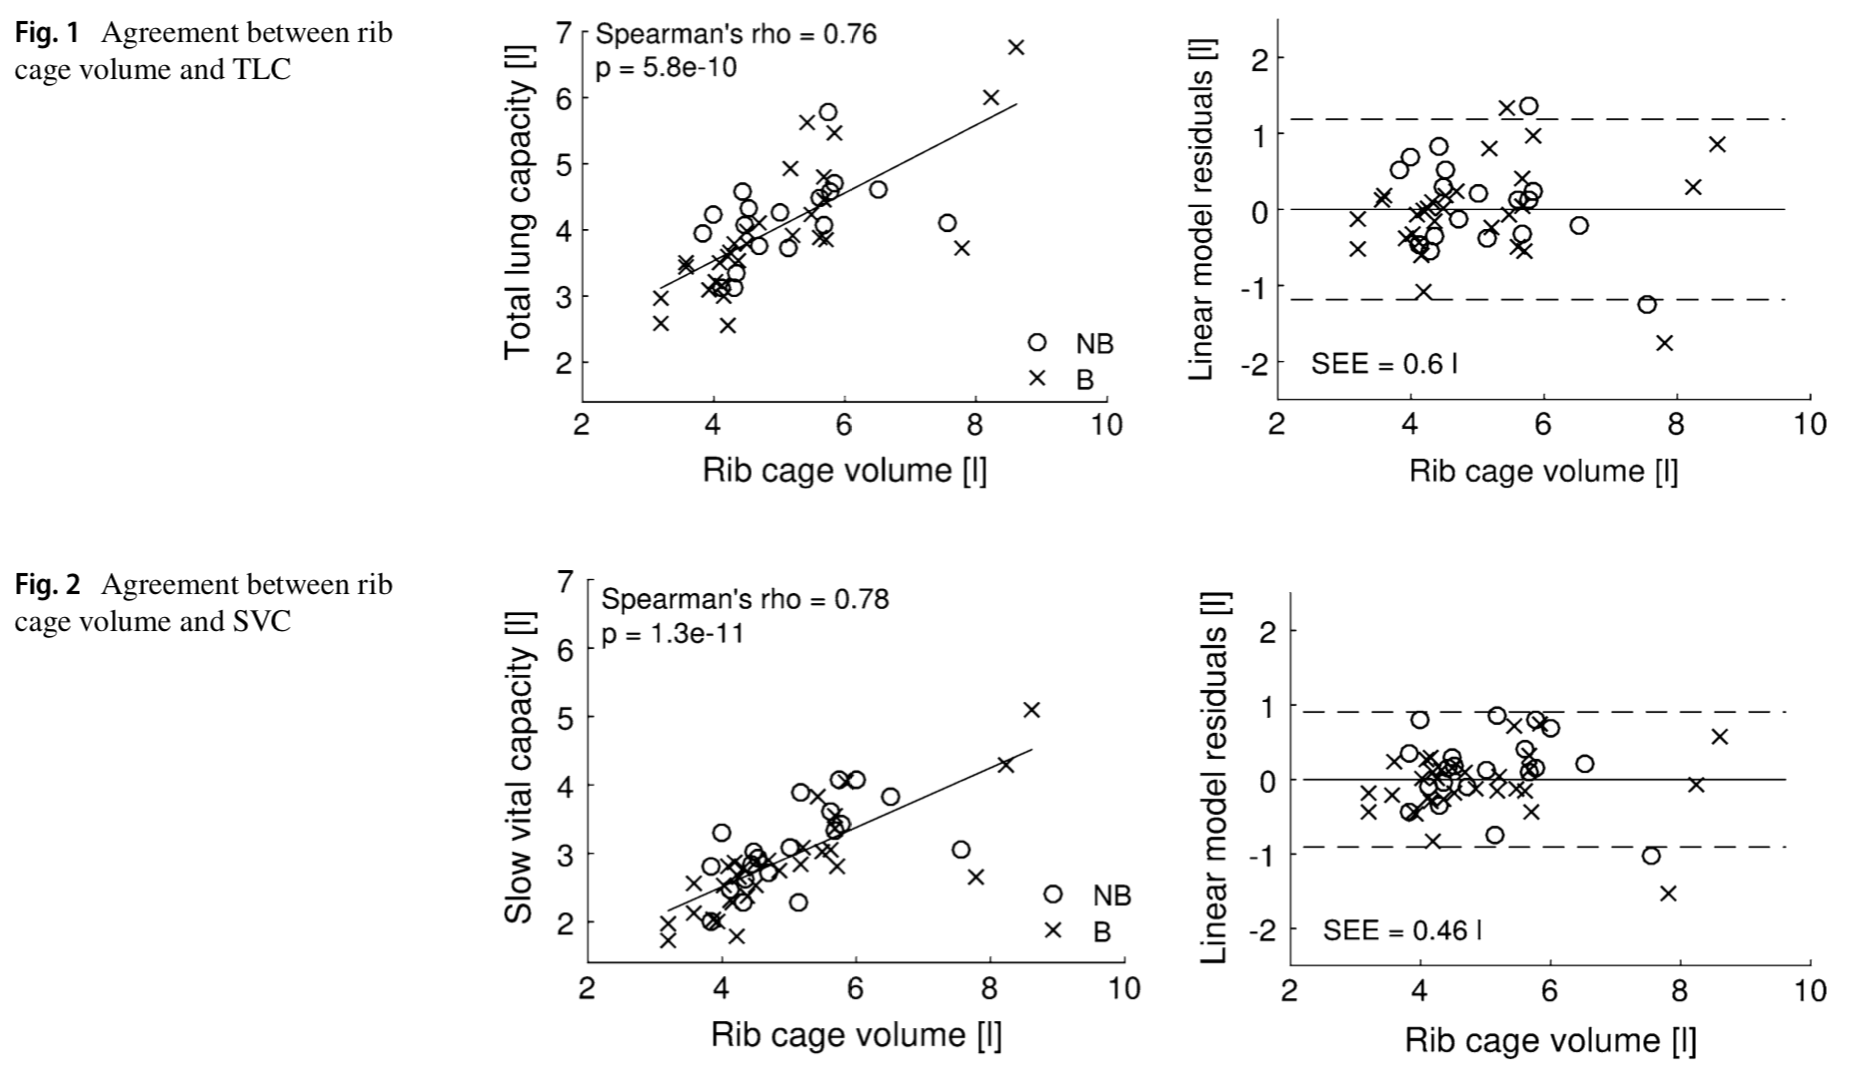 Biplanar stereoradiography predicts pulmonary function tests in adolescent idiopathic scoliosis: a cross-sectional study